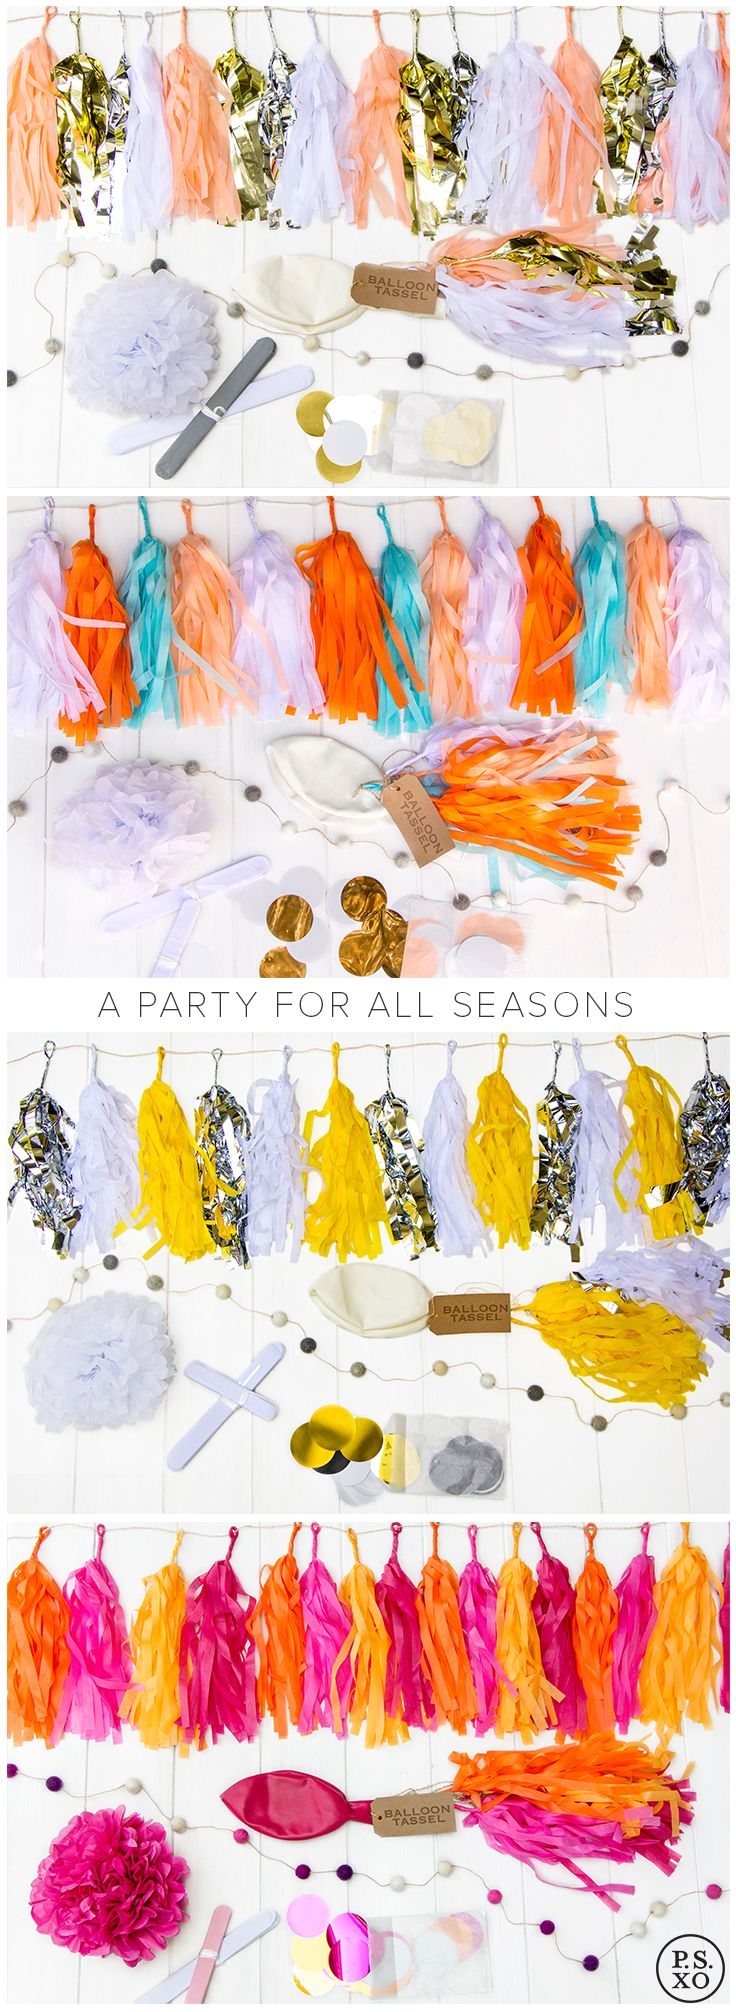 Whatever the season, whatever the occasion, Seedling has you covered! Beautiful party decorations delivered right to your door, so you can stress less and party more!